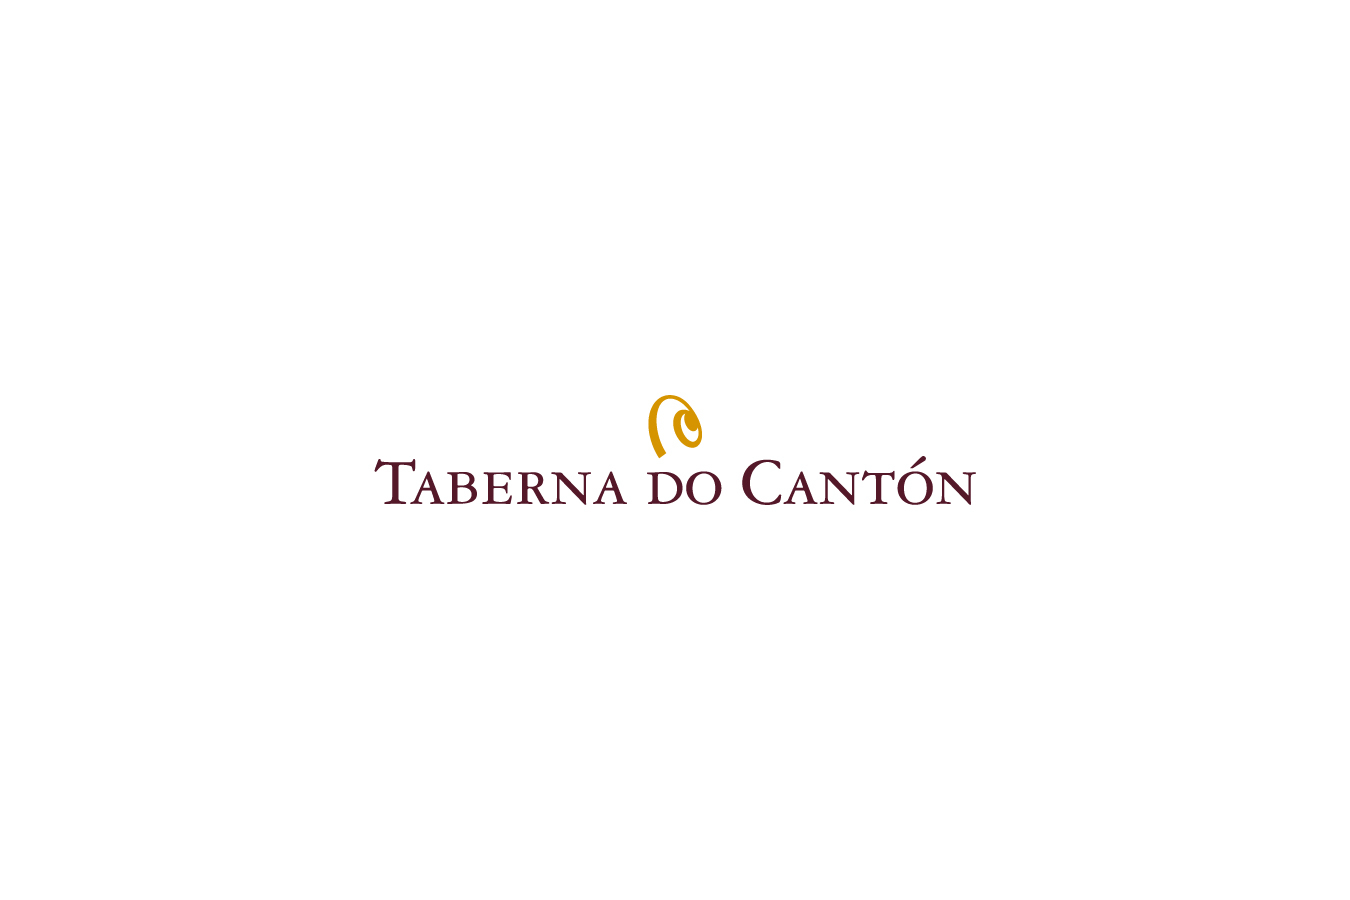 TABERNA DO CANTÓN logotipo